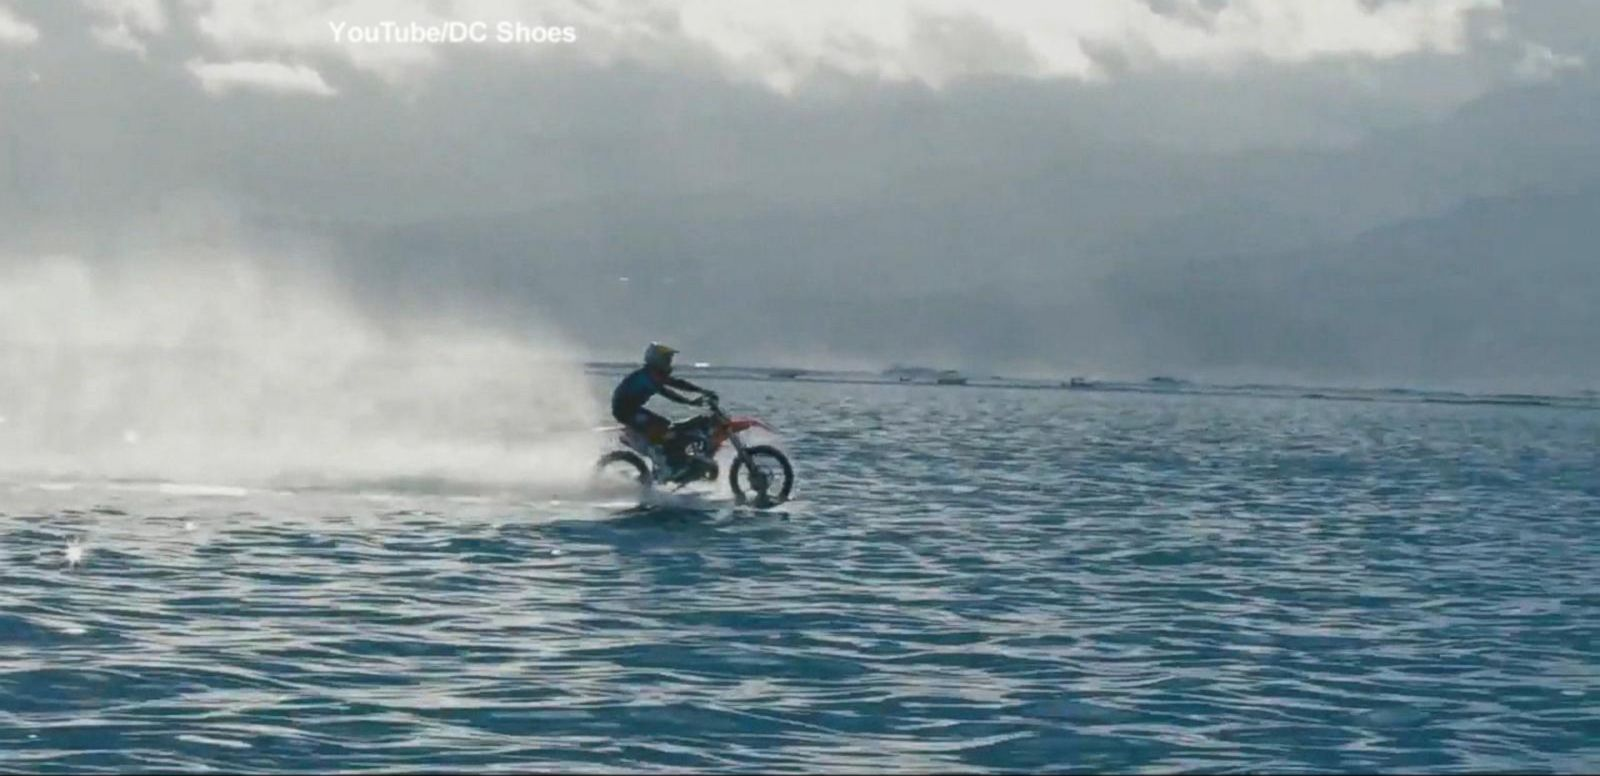 VIDEO: Stunt Man Surfs on Ocean With Motorcycle